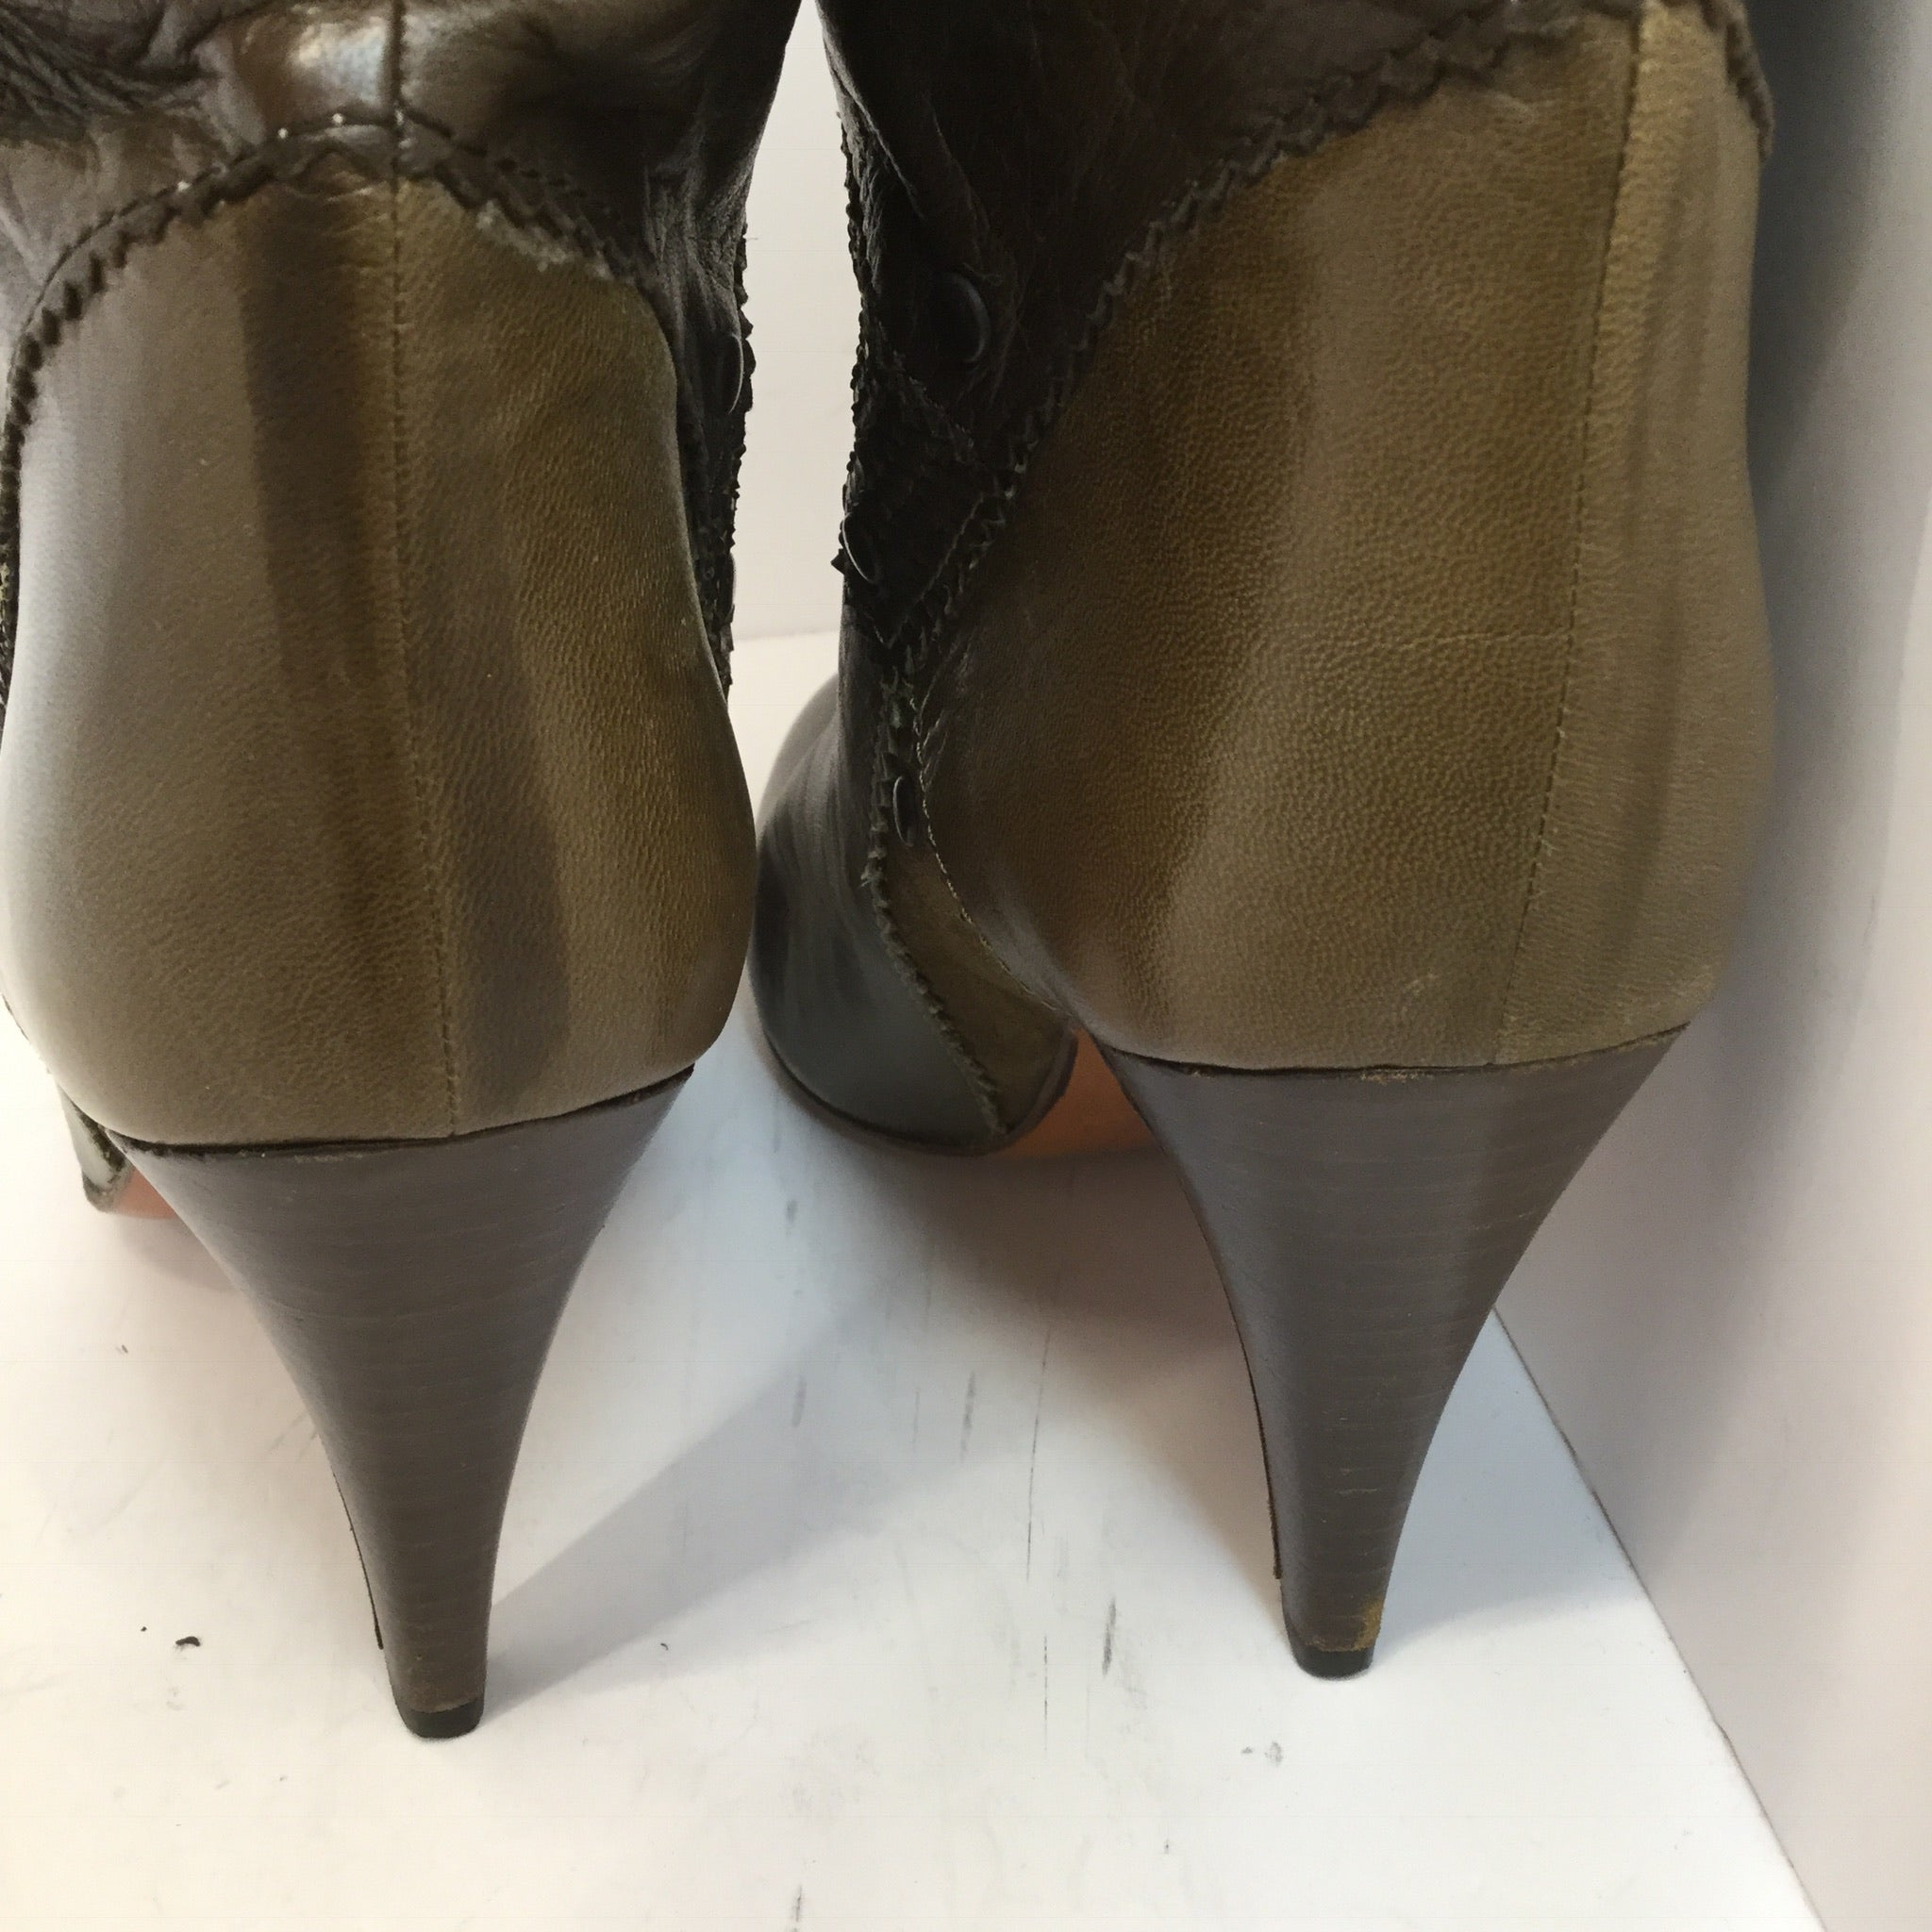 Ottorino Bossi Patchwork Leather Boots - size 36.5